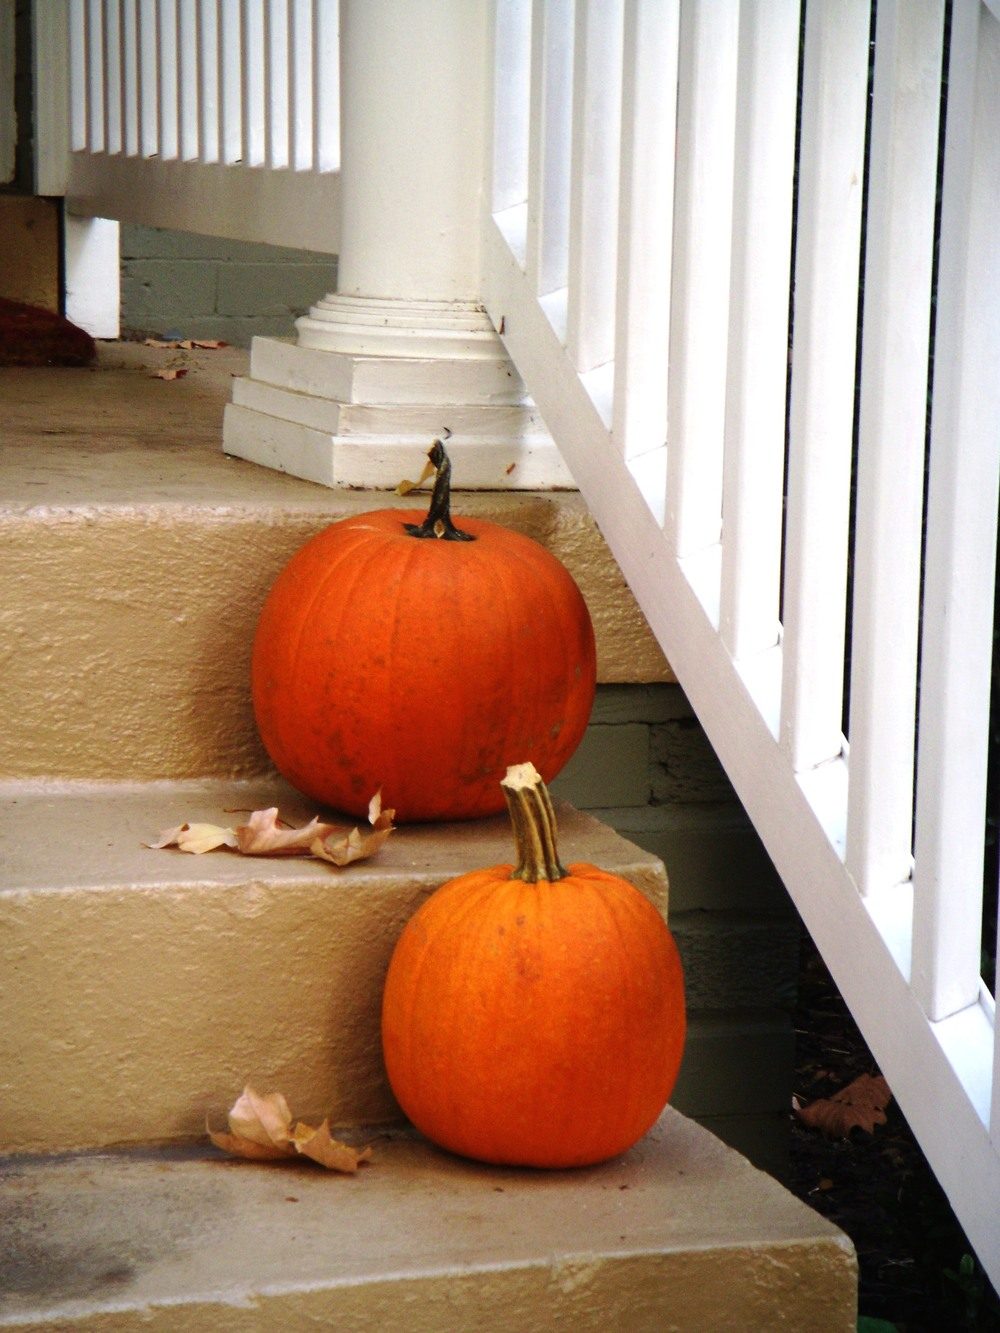 Instead of decorating your home with non-biodegradable plastic item this Halloween choose more natural ones like a real pumpkin. Pumpkins can be composted at the end of the season resulting in less waste being sent to the landfill.